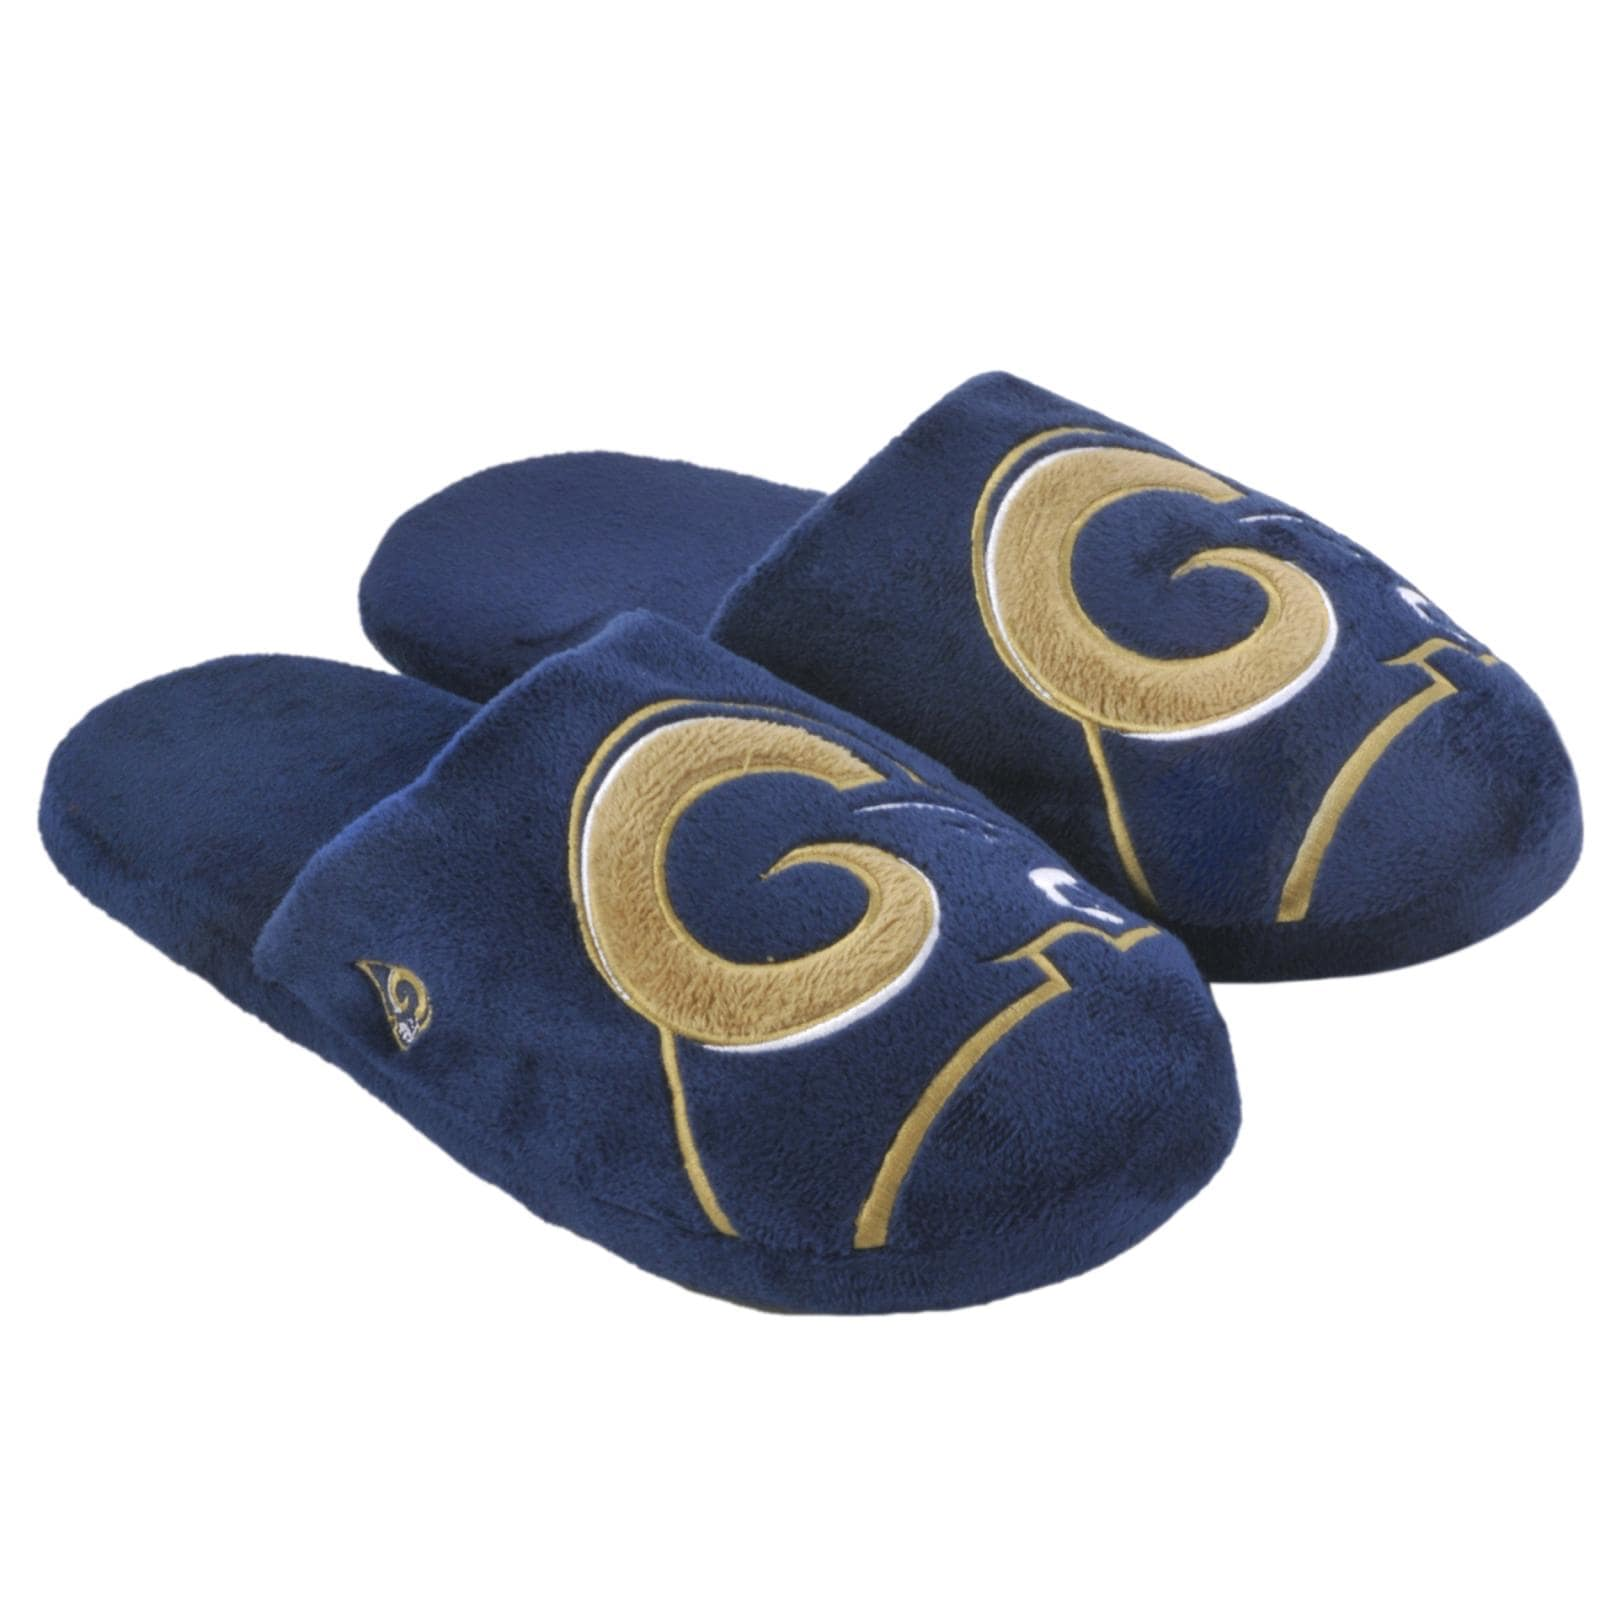 NFL St. Louis Rams Big Logo Slippers